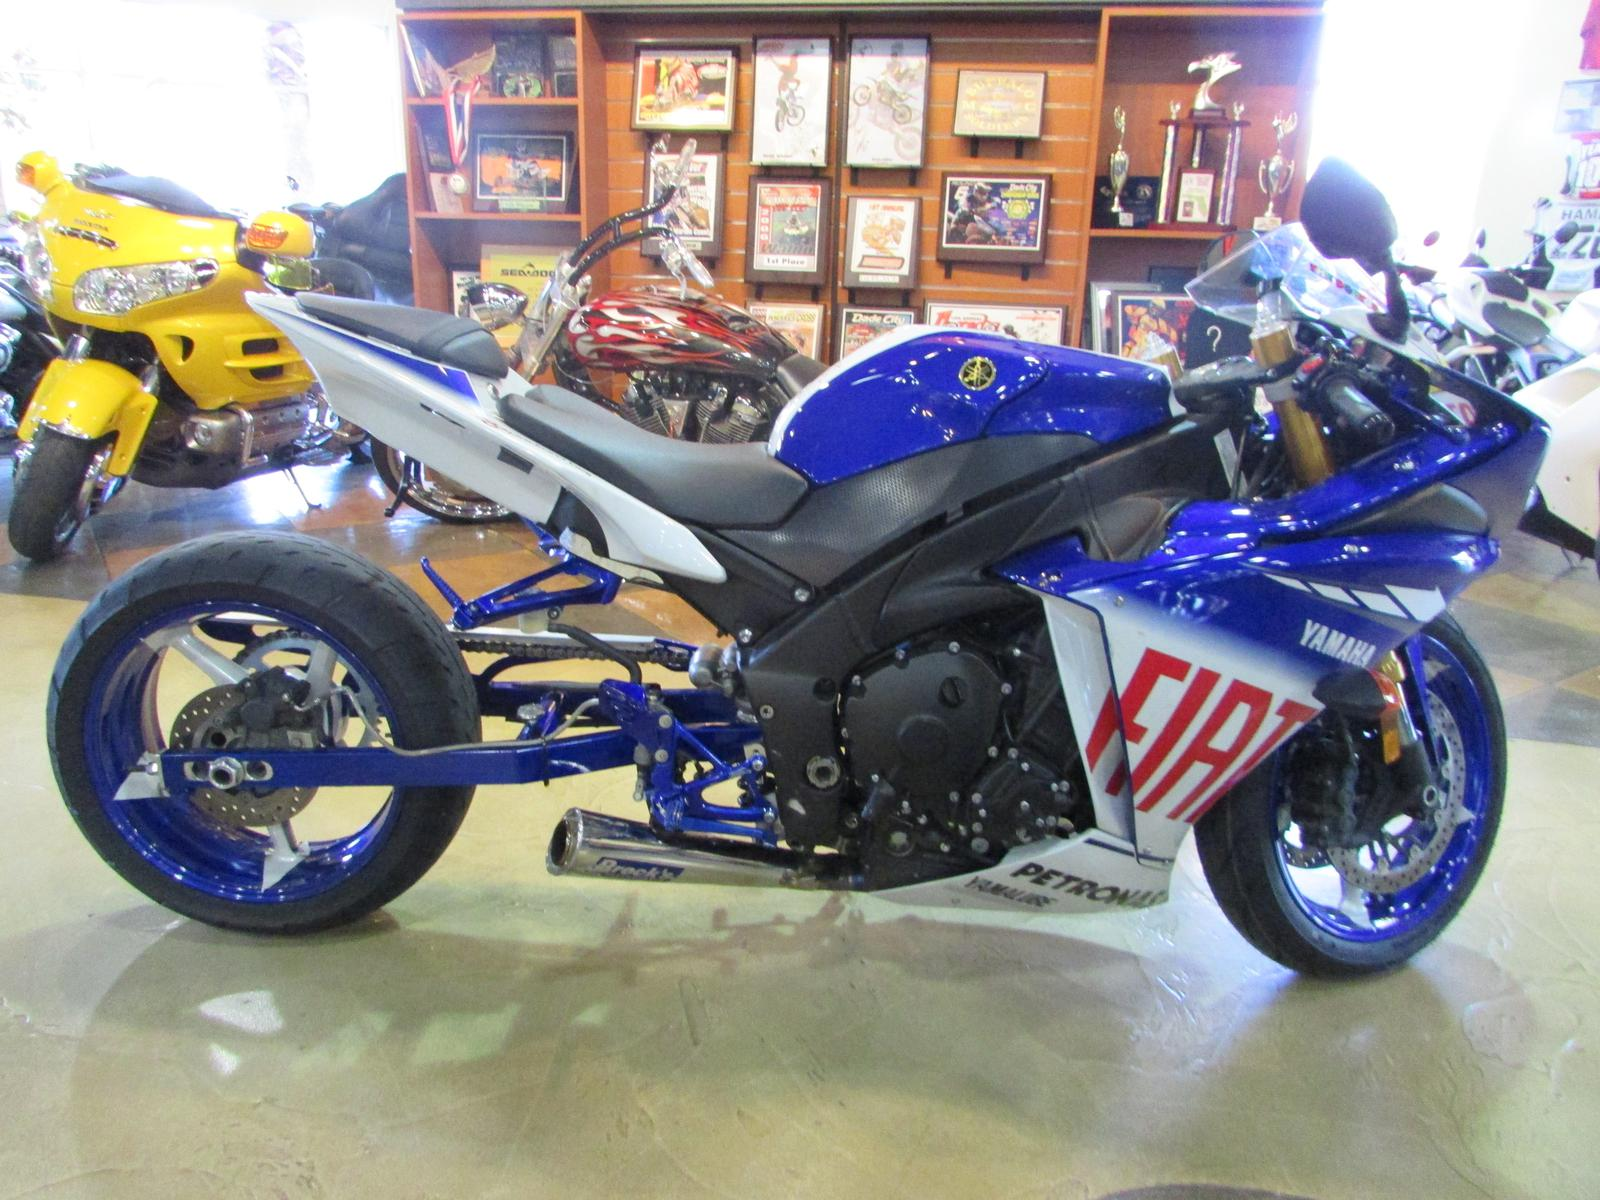 2010 Yamaha YZF-R1 FIAT LE, motorcycle listing